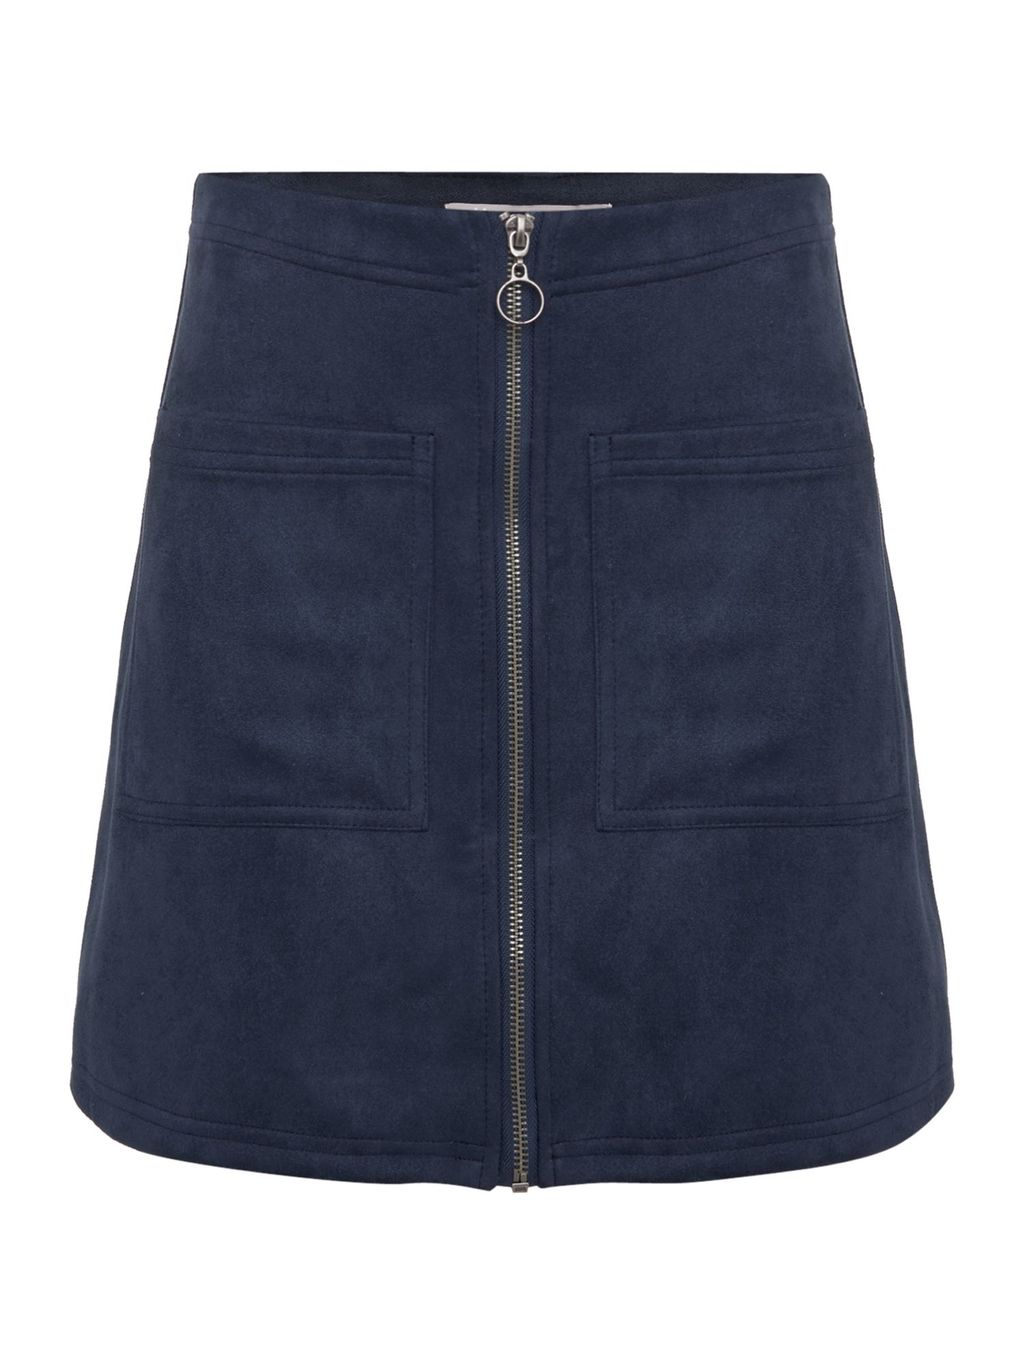 Mercy Skirt, Blue - length: mini; pattern: plain; waist: mid/regular rise; predominant colour: navy; occasions: casual; style: mini skirt; fibres: polyester/polyamide - 100%; hip detail: subtle/flattering hip detail; texture group: leather; fit: straight cut; pattern type: fabric; season: a/w 2016; wardrobe: highlight